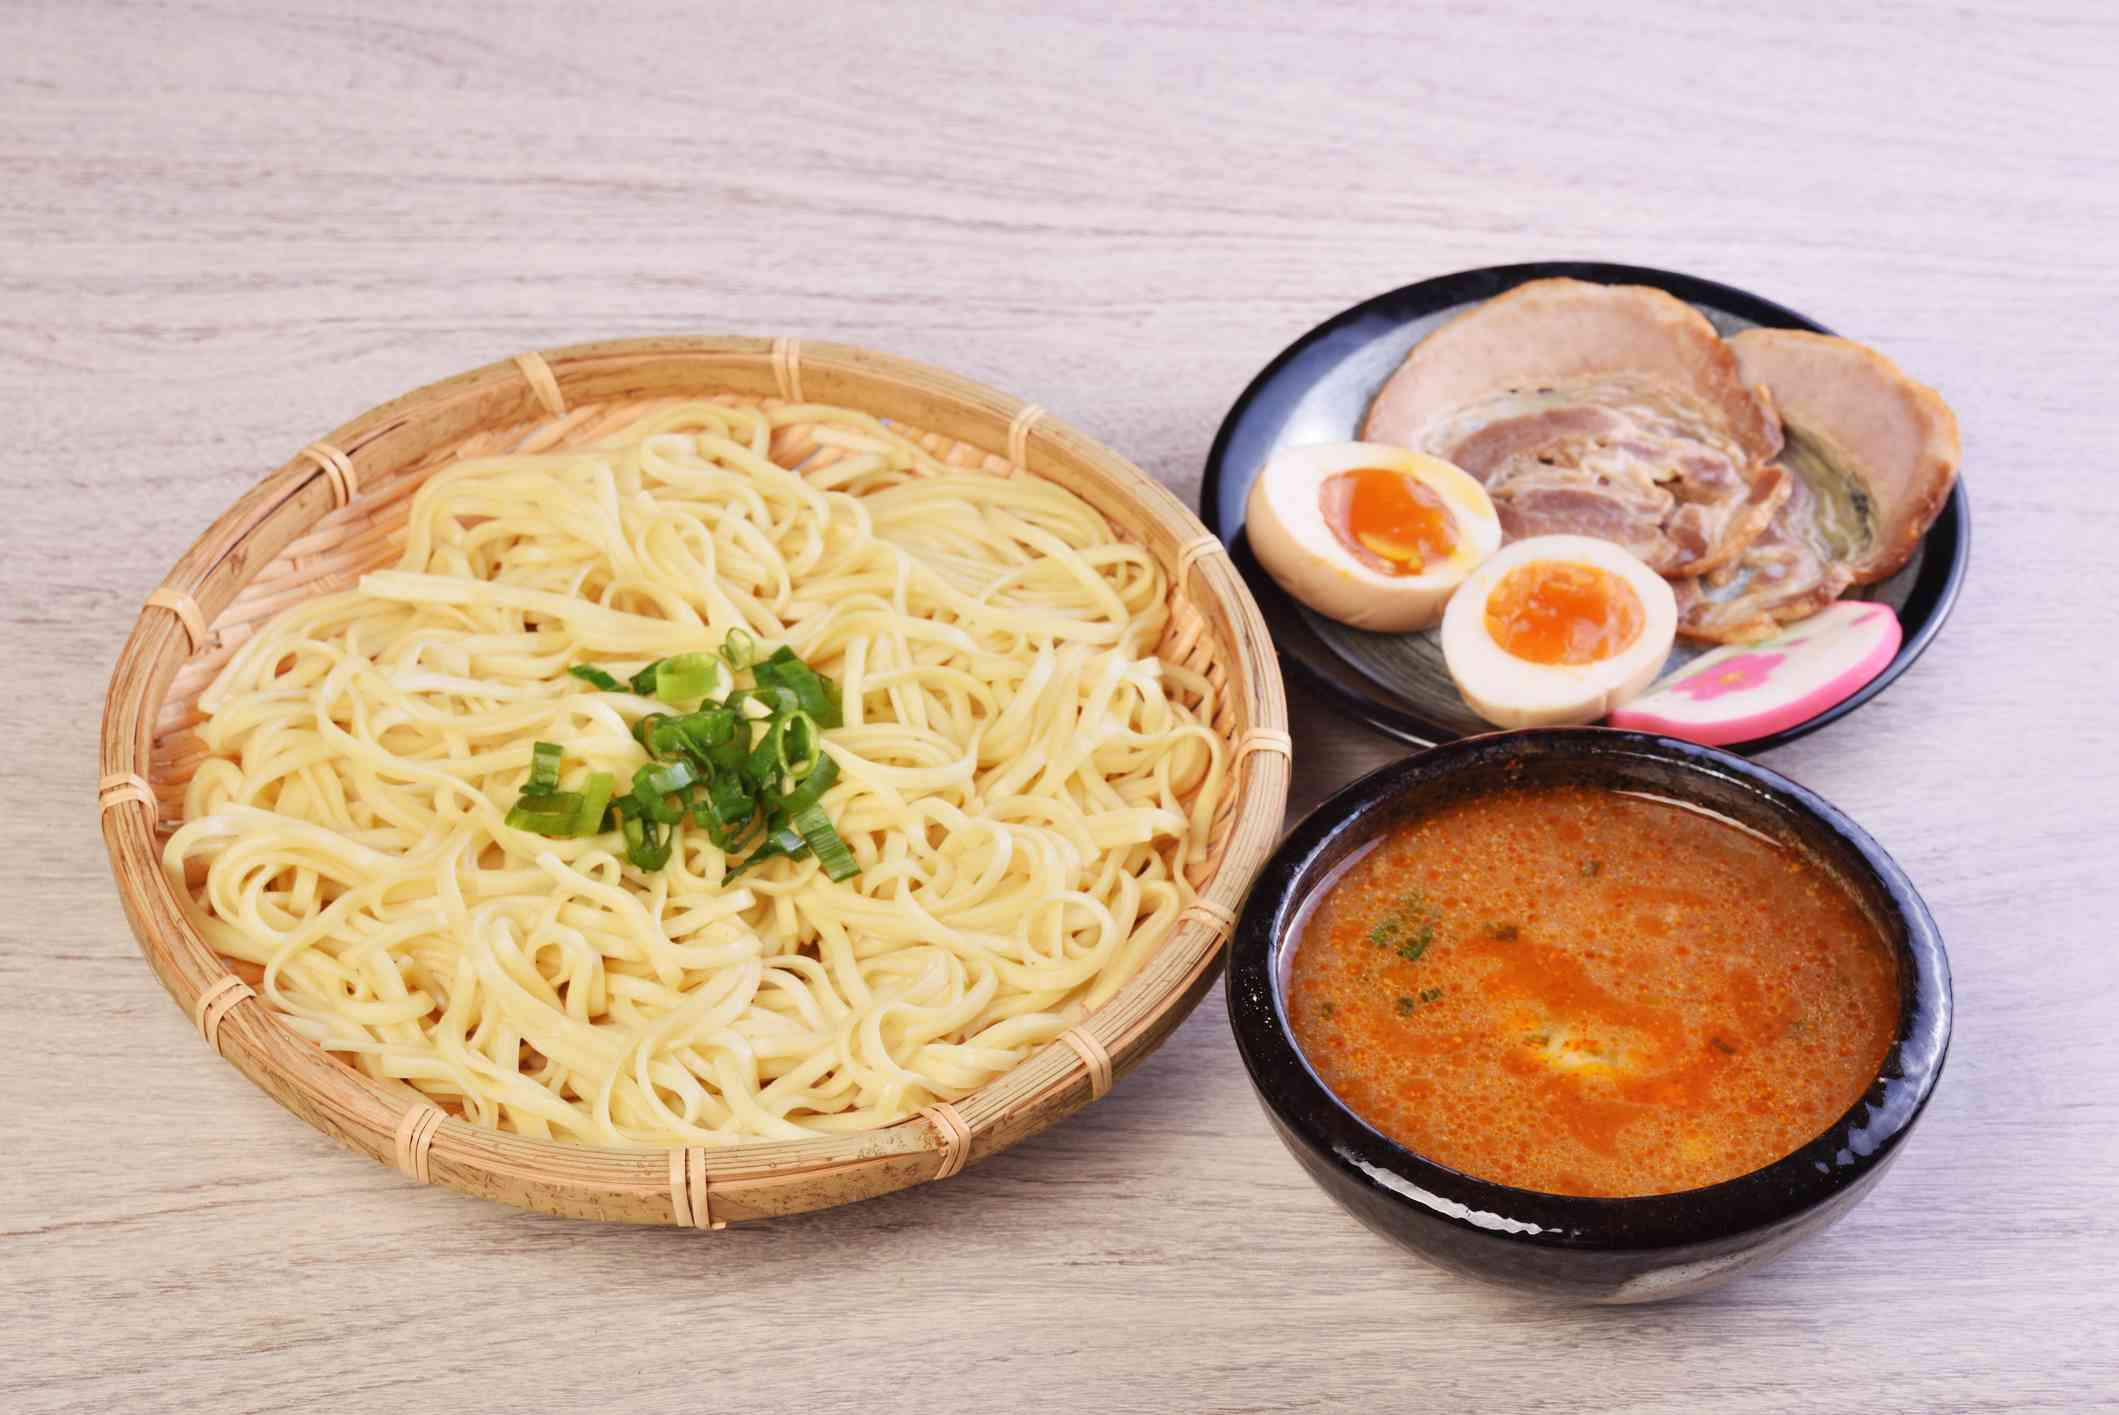 basket of noodles next to a bowl of brpth and plate of chashu pork and soft boiled eggs